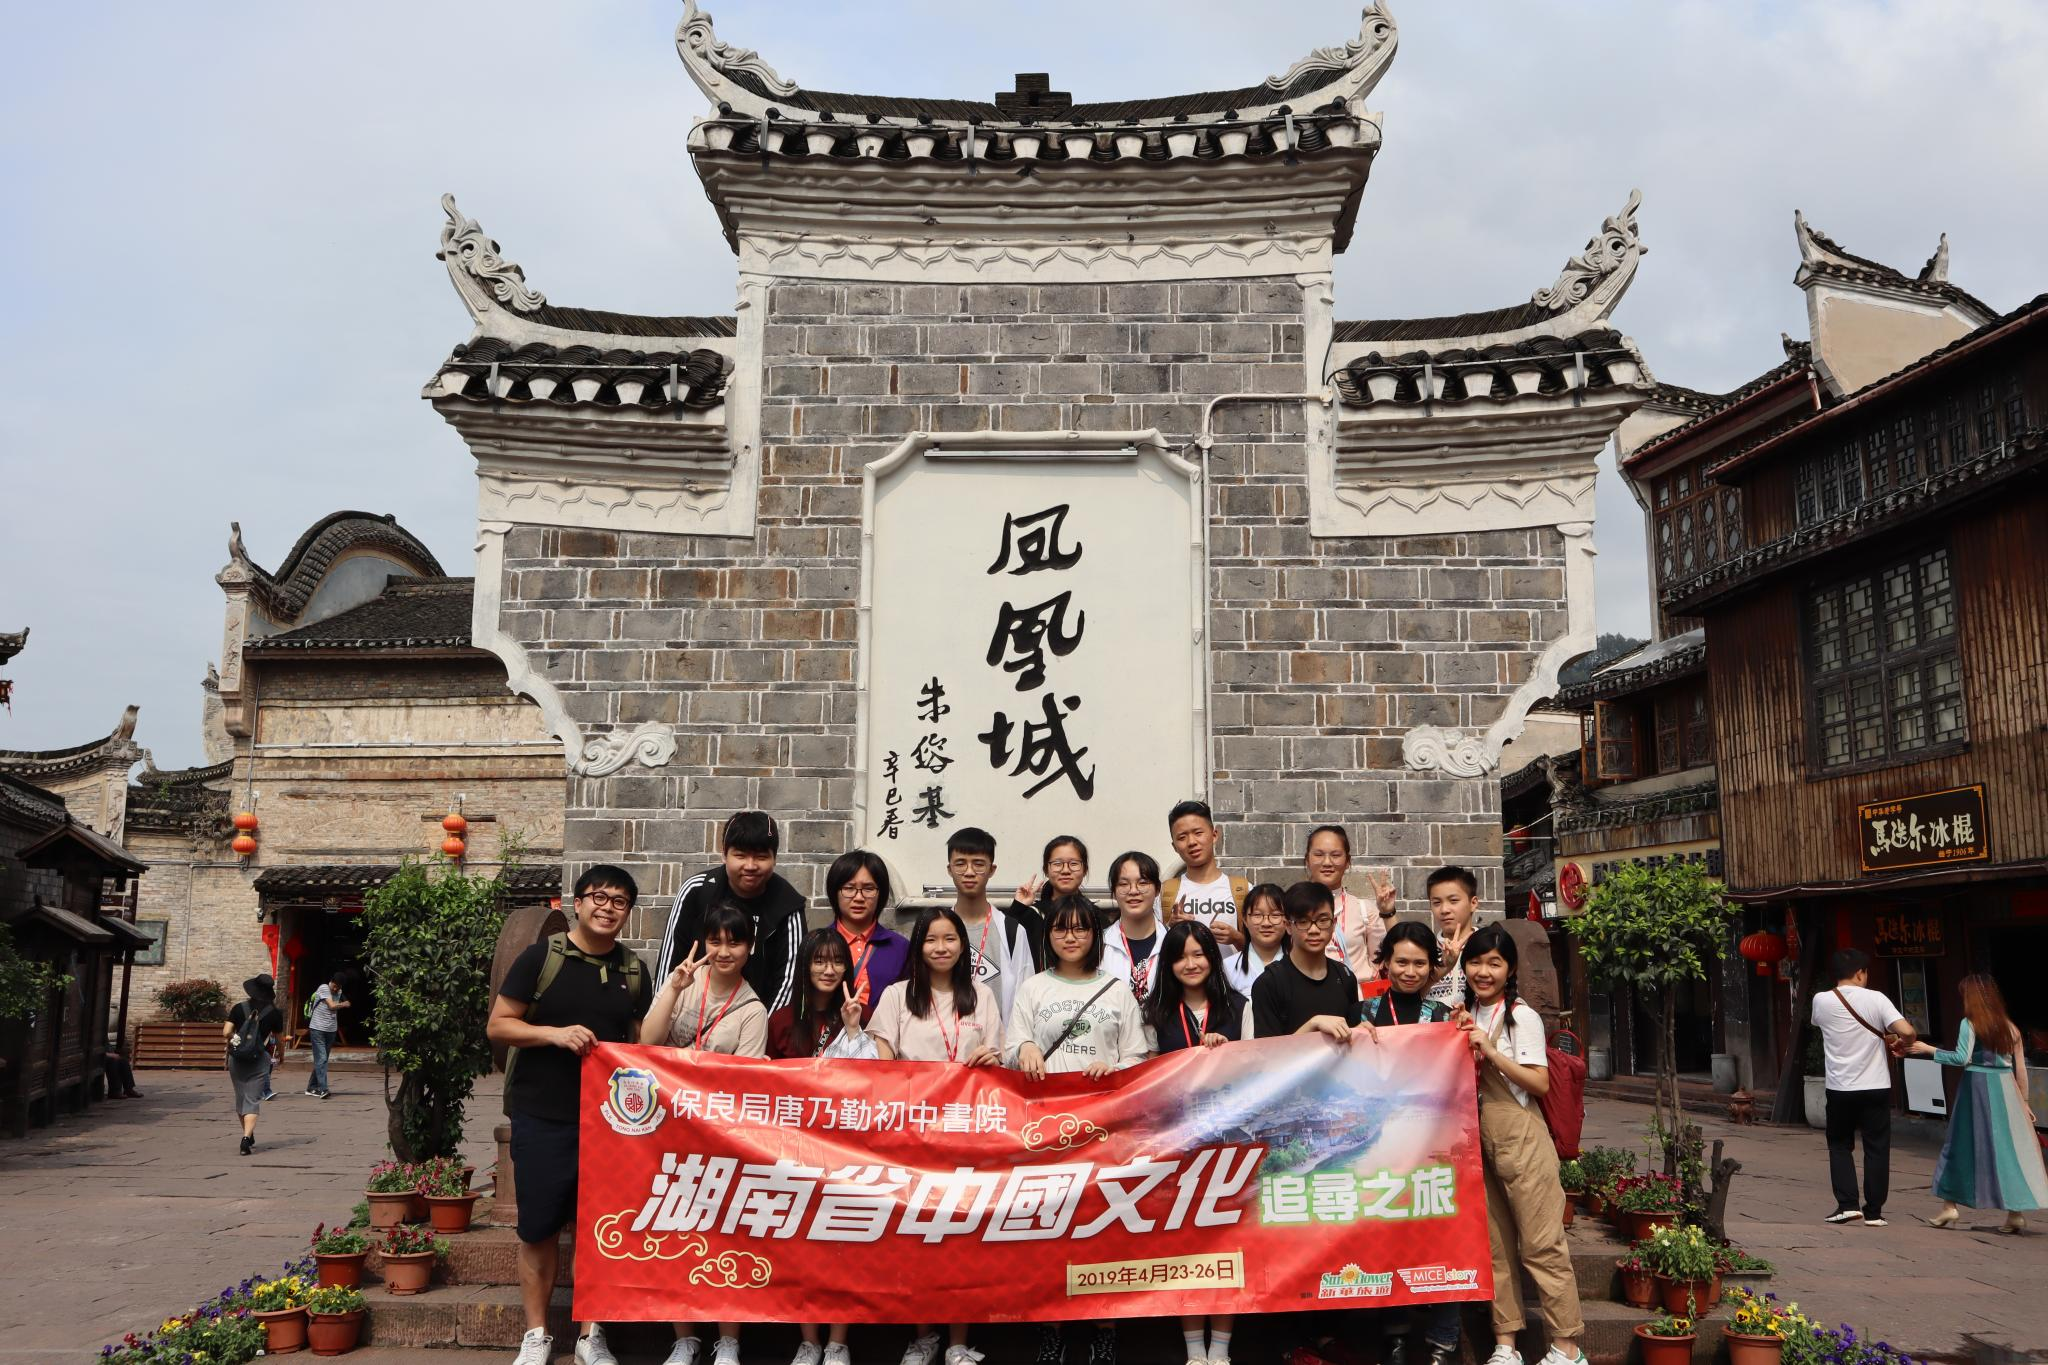 A group photo was taken in ancient city of Fenghuang.